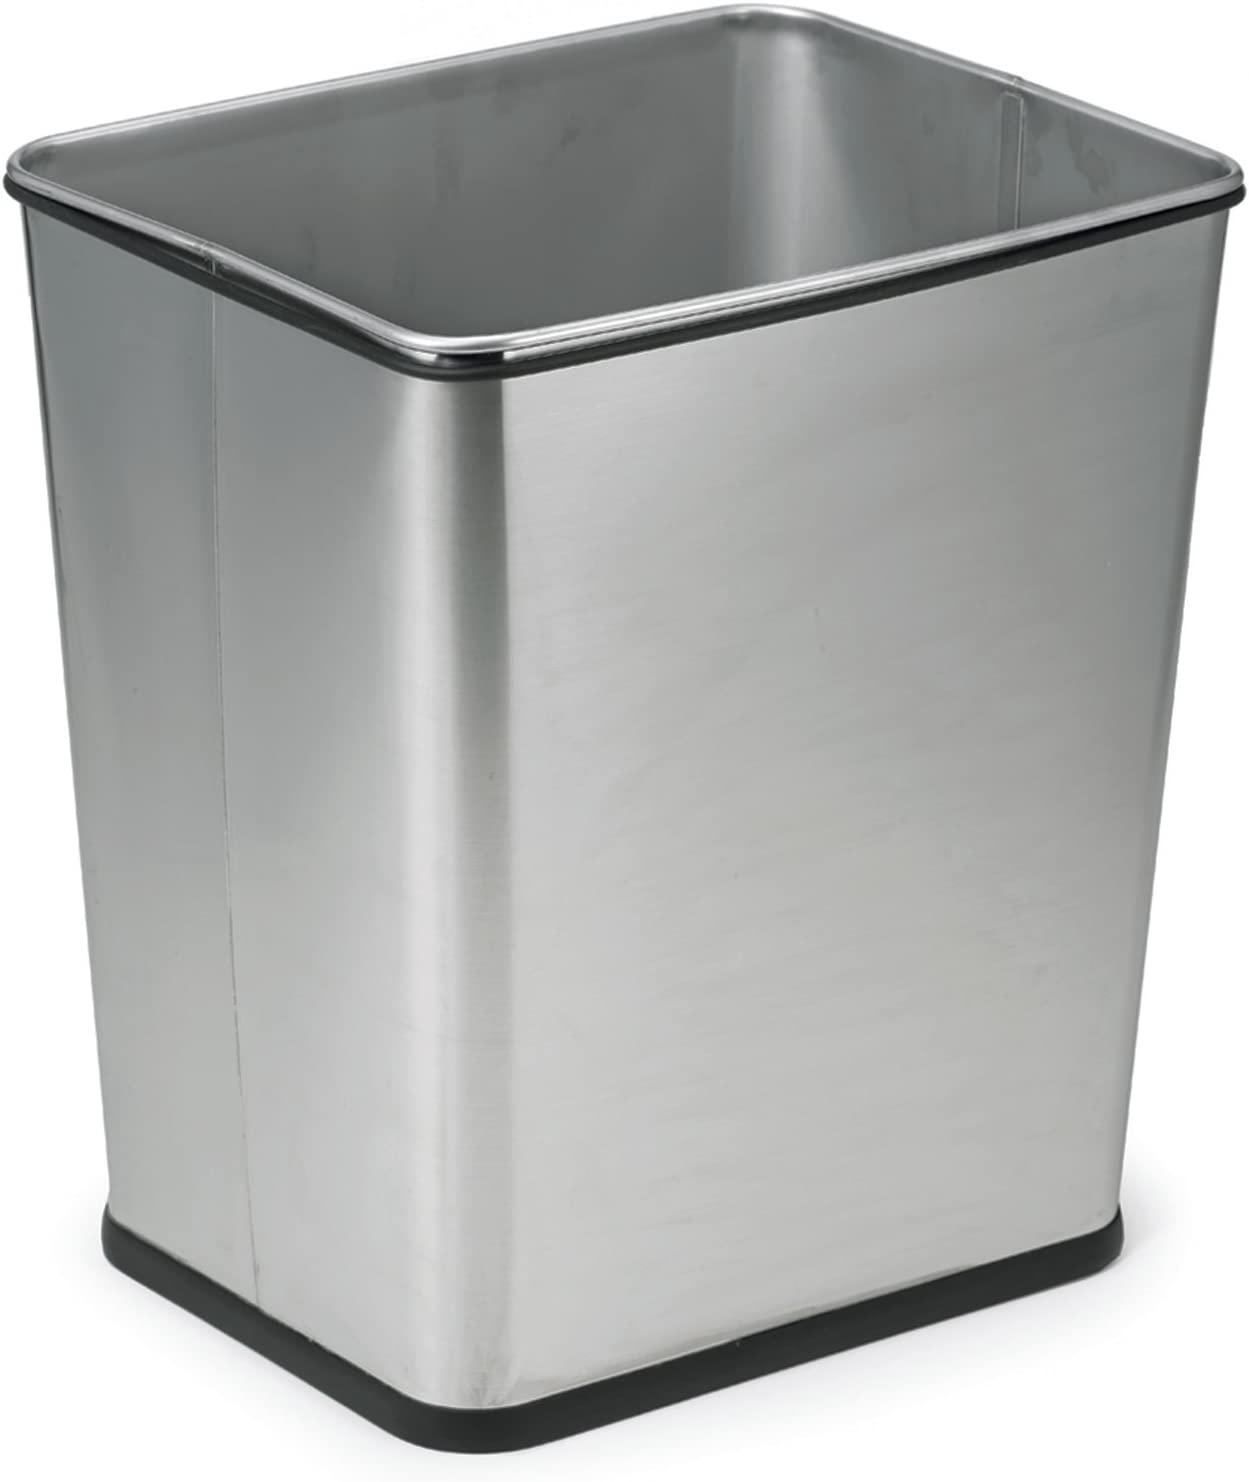 7 Gallon Popular brand in the world Trash Can Max 57% OFF